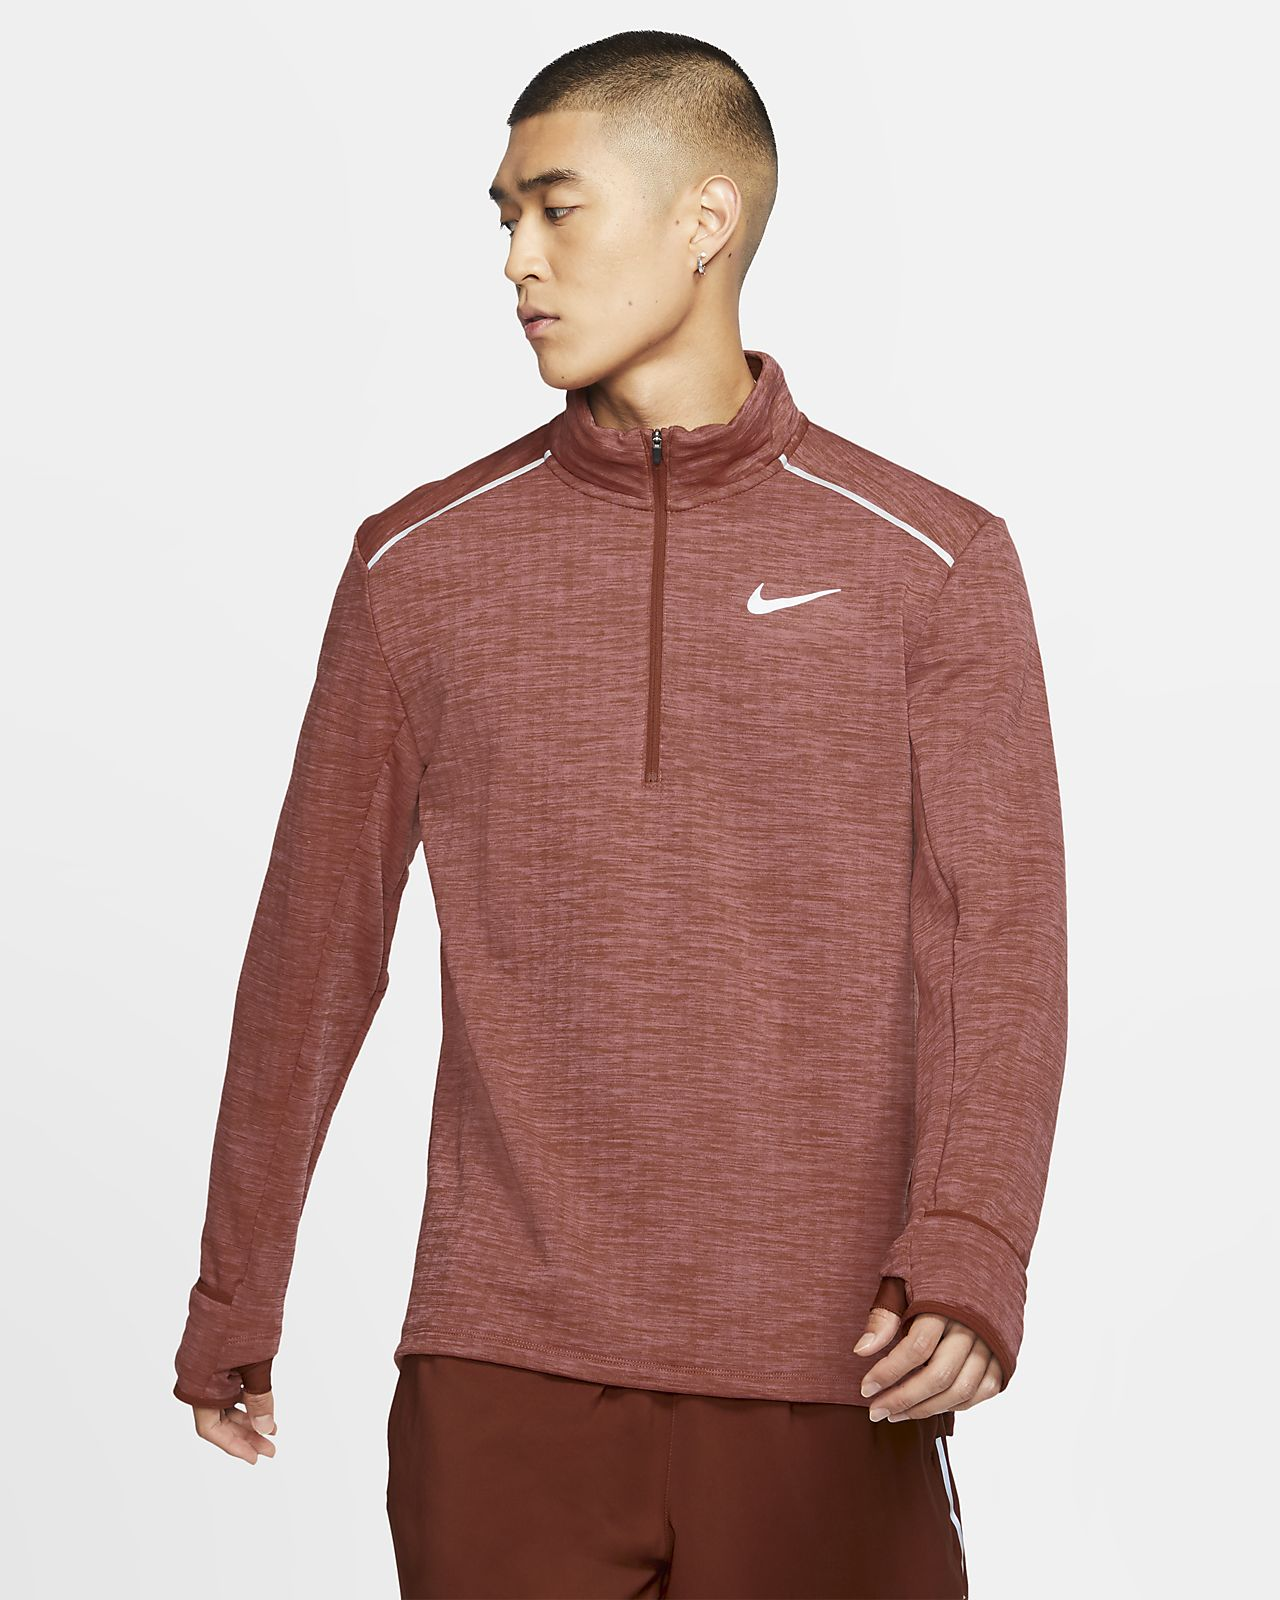 Nike Therma-Sphere 3.0 Men's 1/2-Zip Running Top